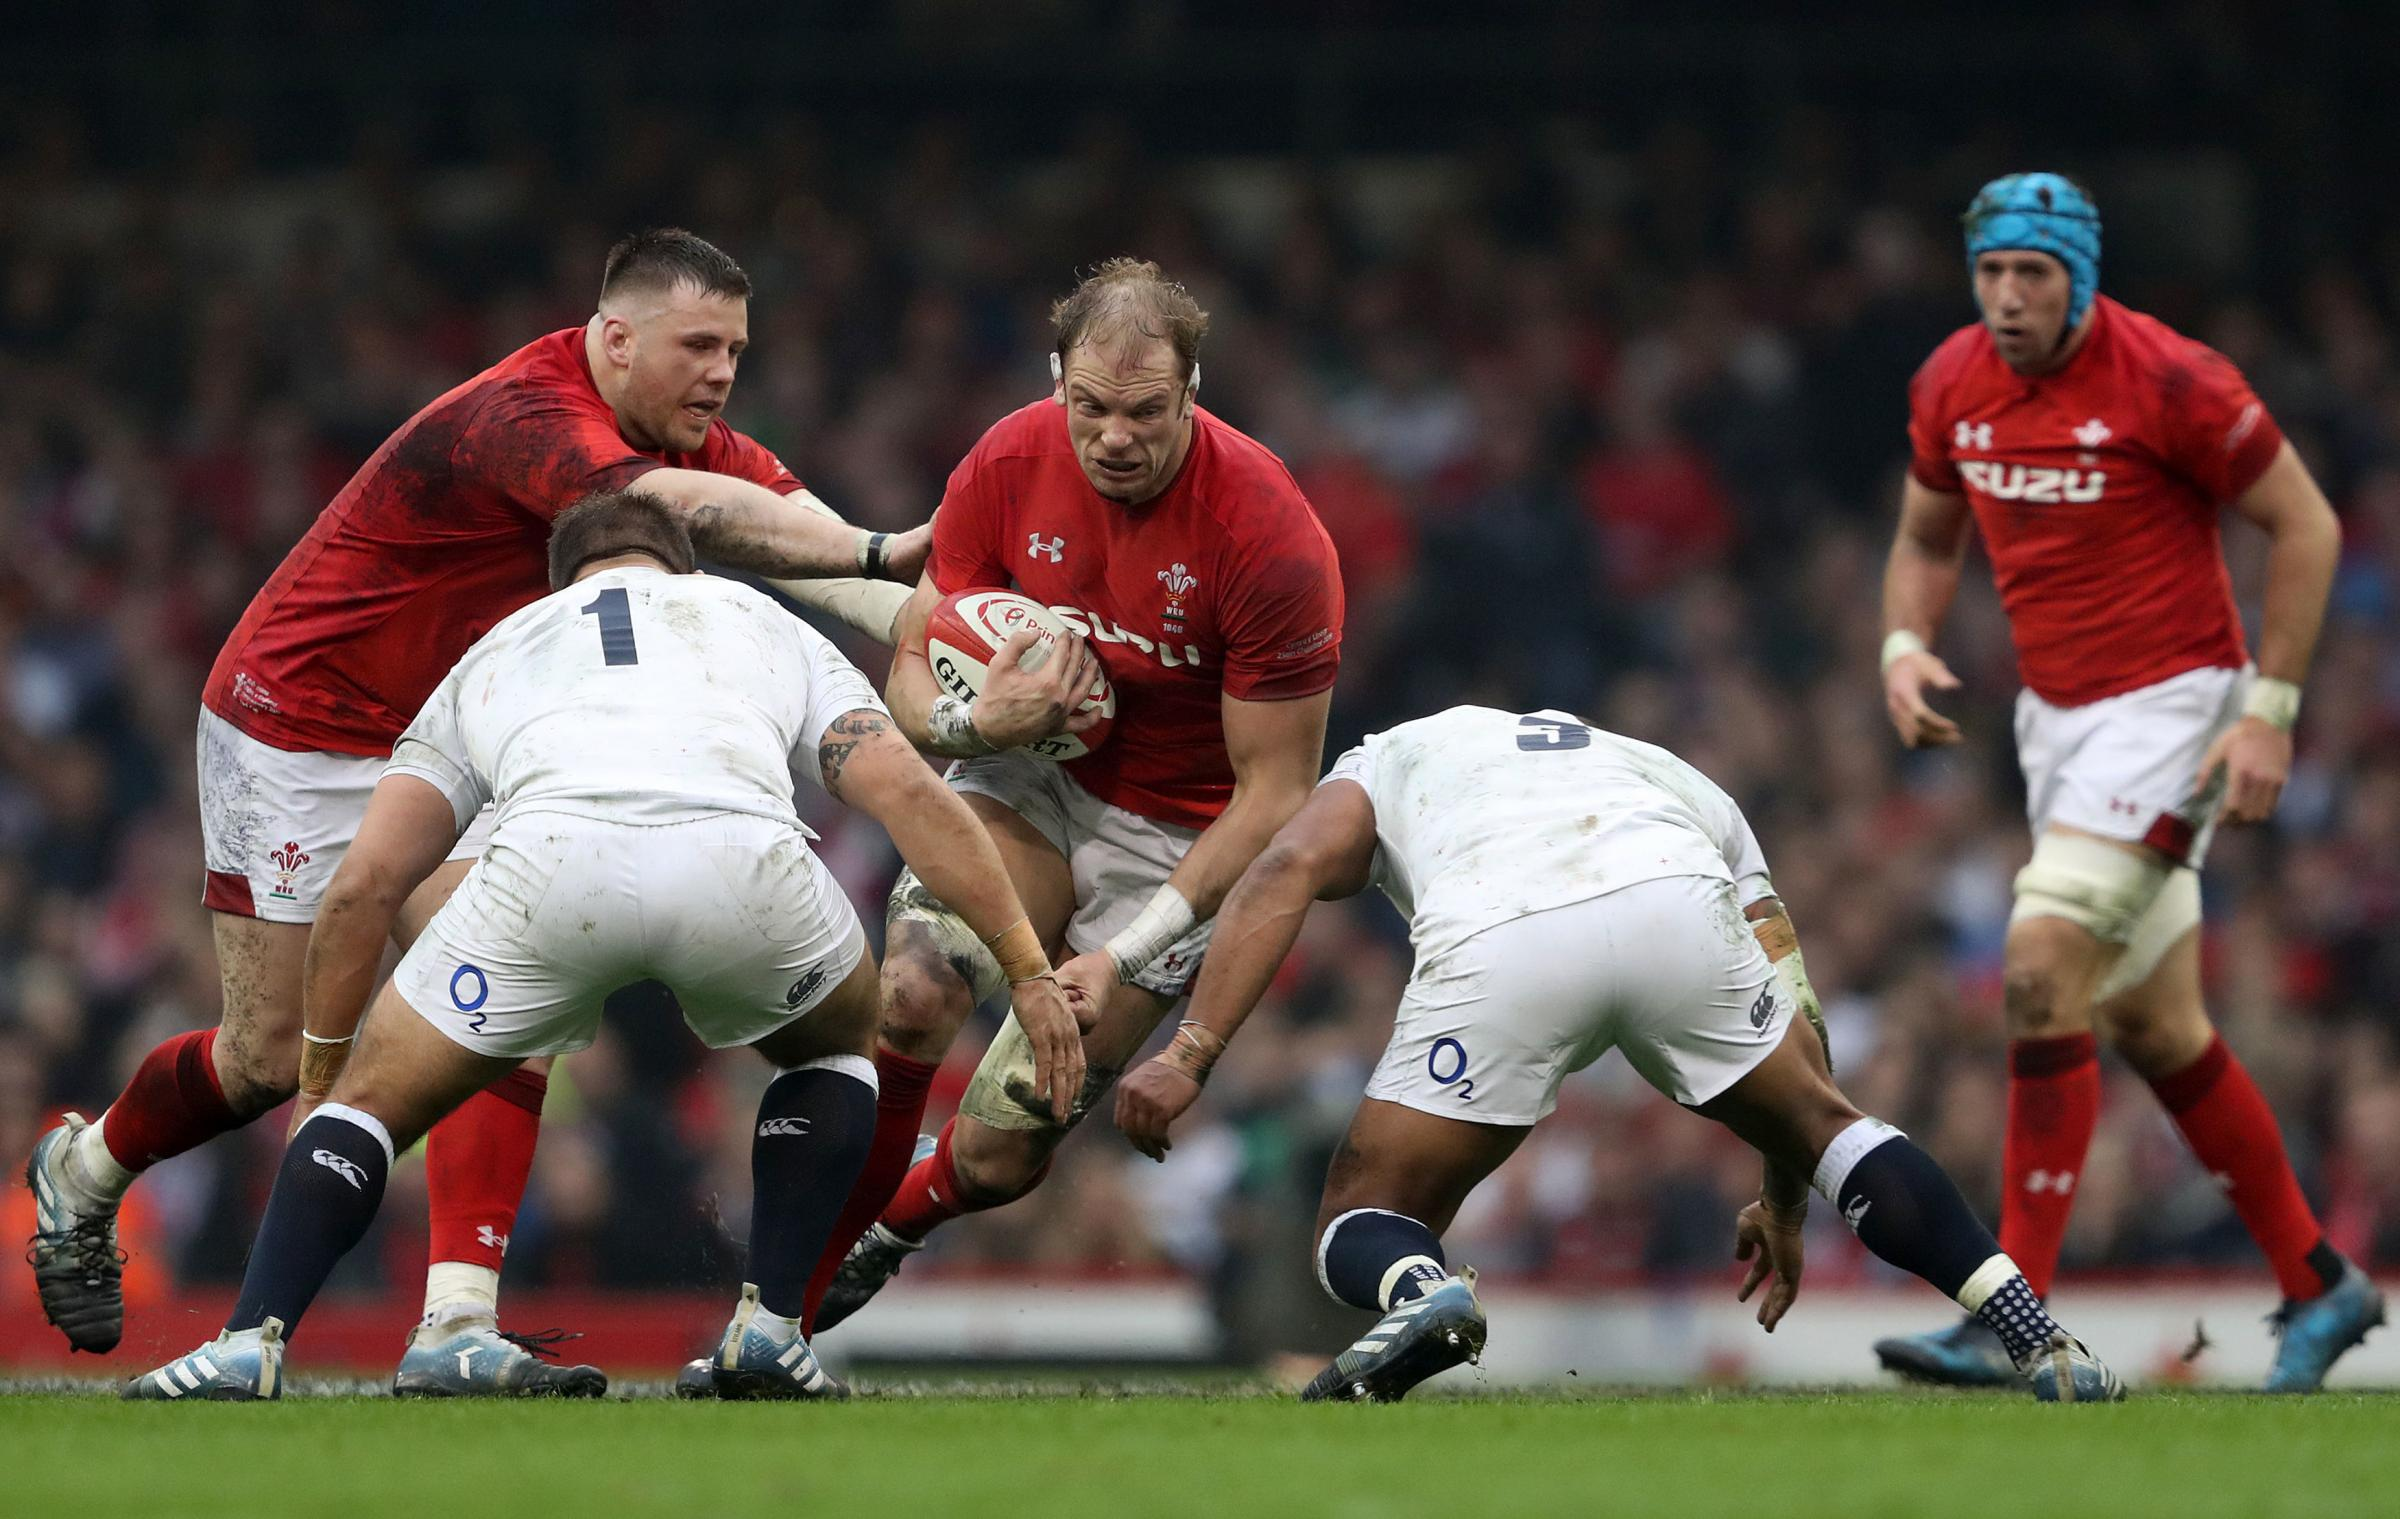 Wales' Alun Wyn Jones (centre) is tackled by England's Ben Moon (left) and Kyle Sinckler during the Guinness Six Nations match at the Principality Stadium, Cardiff. PRESS ASSOCIATION Photo. Picture date: Saturday February 23, 2019. See PA story R